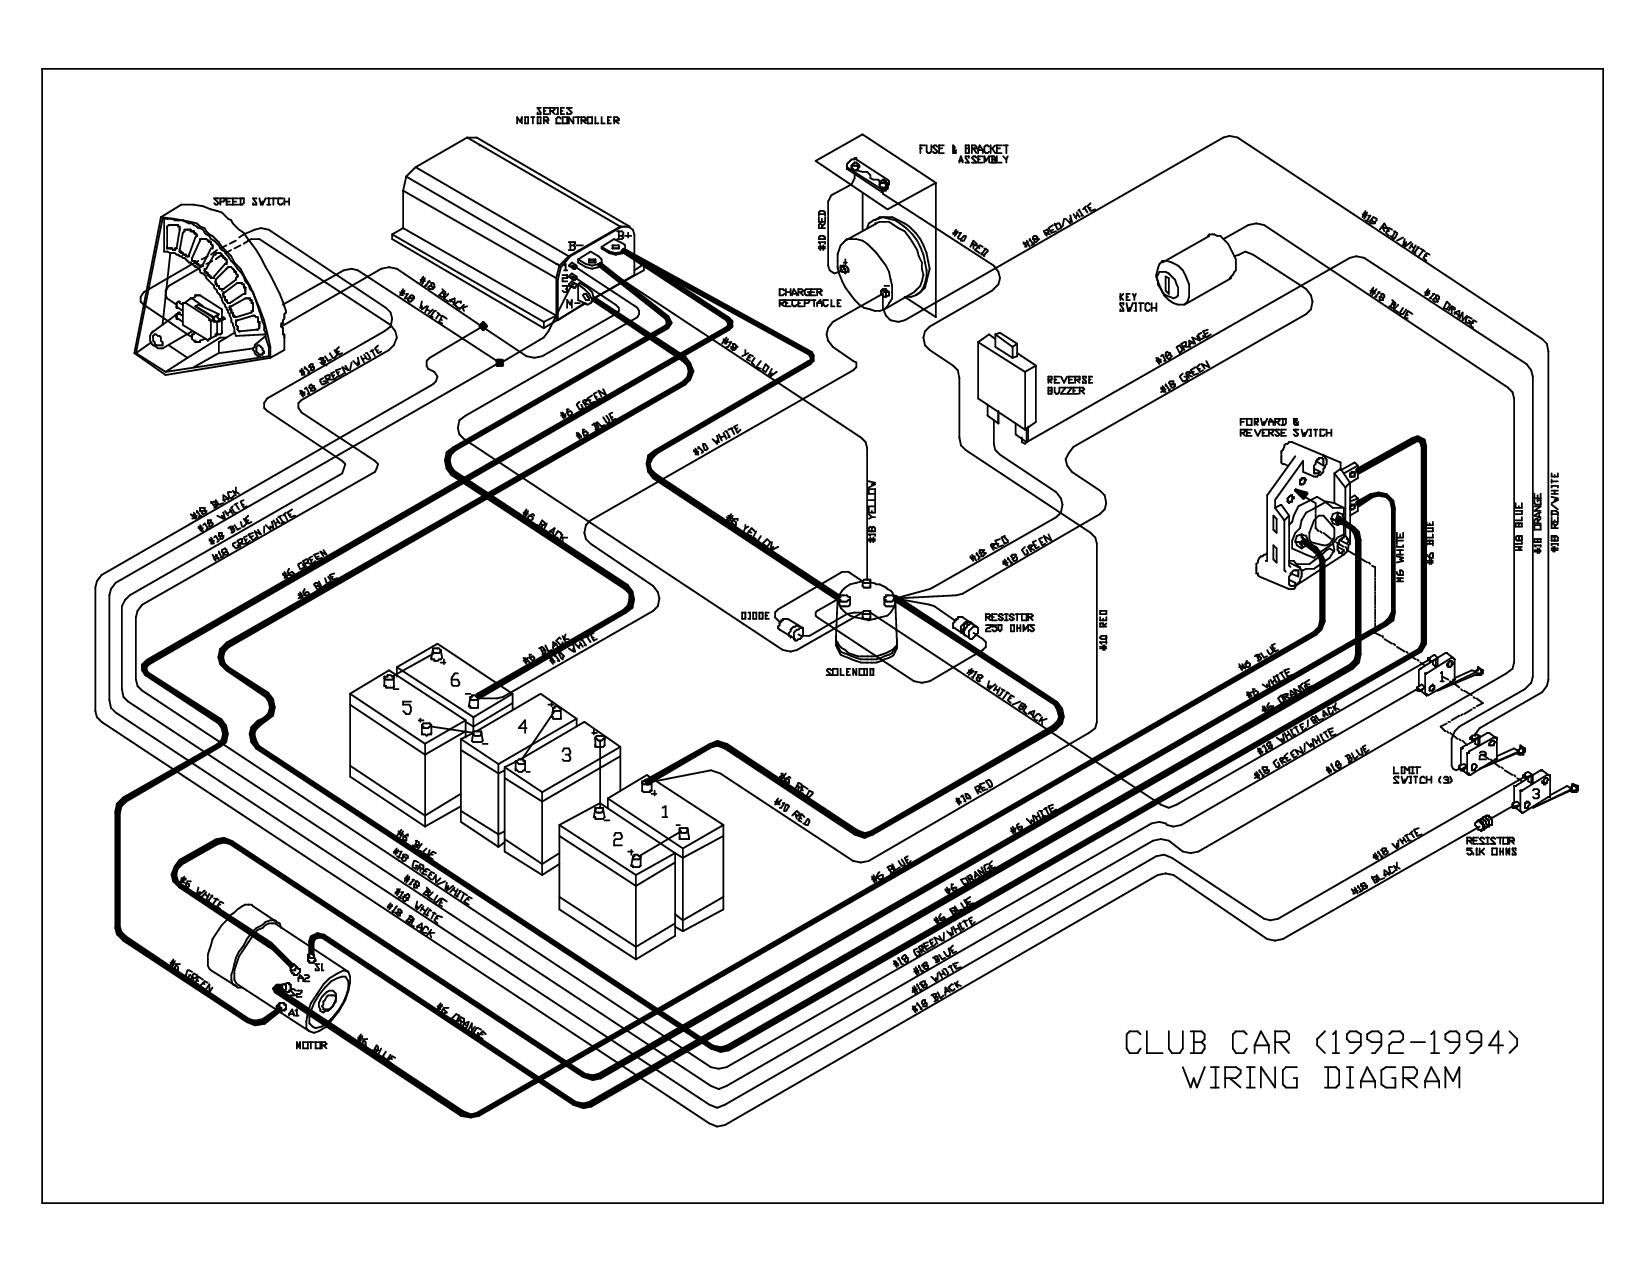 Yamaha G1 Fuel System Diagram